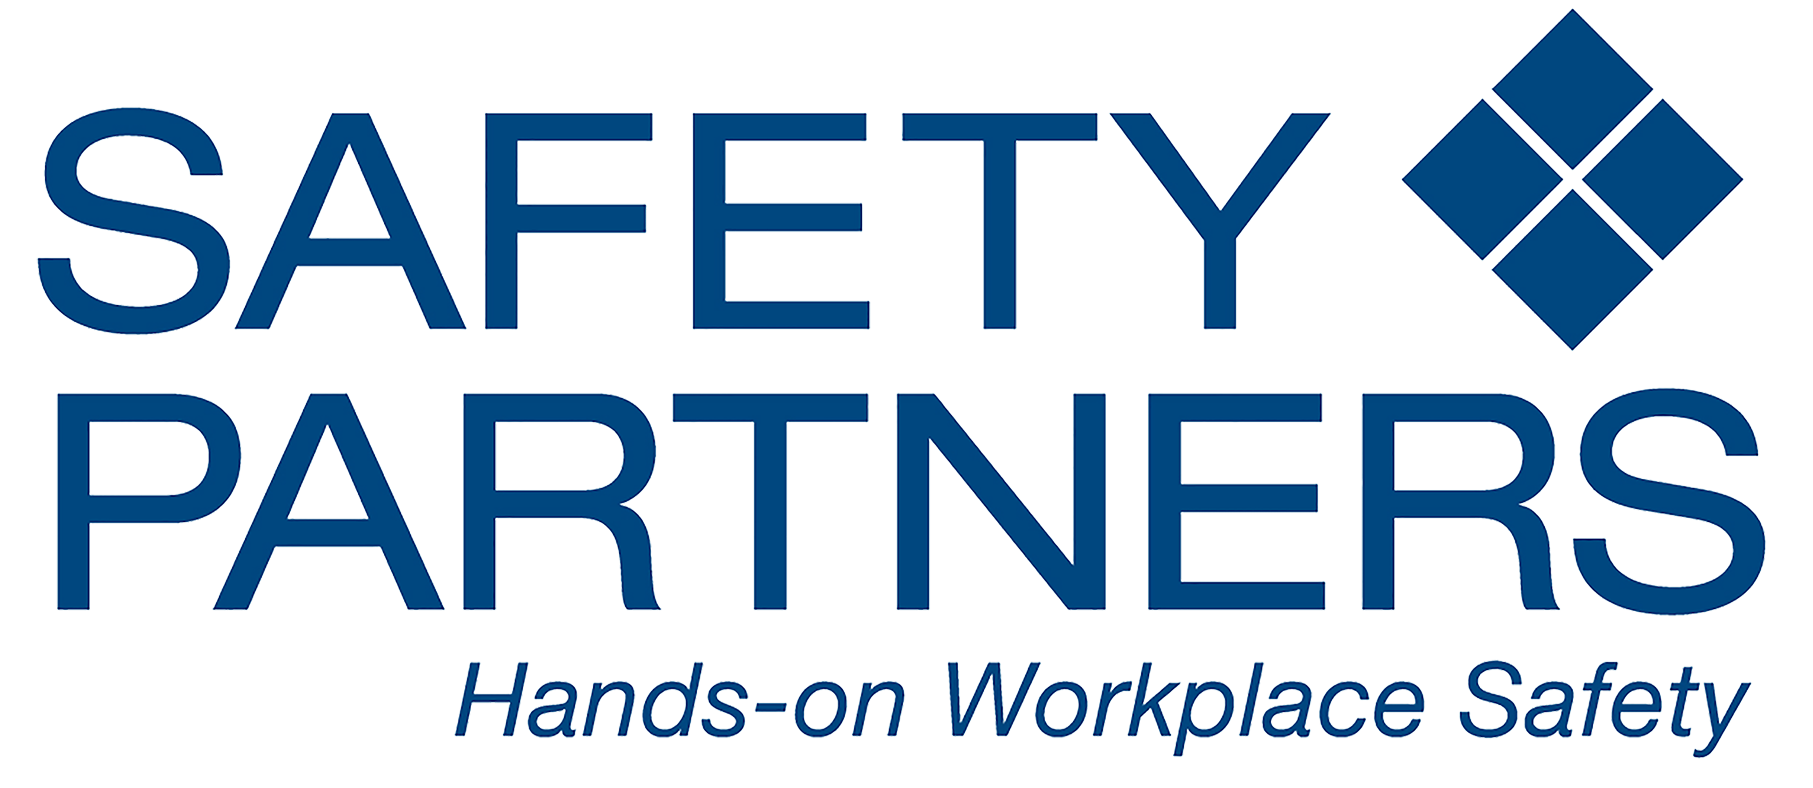 Safety Partners, Inc. logo